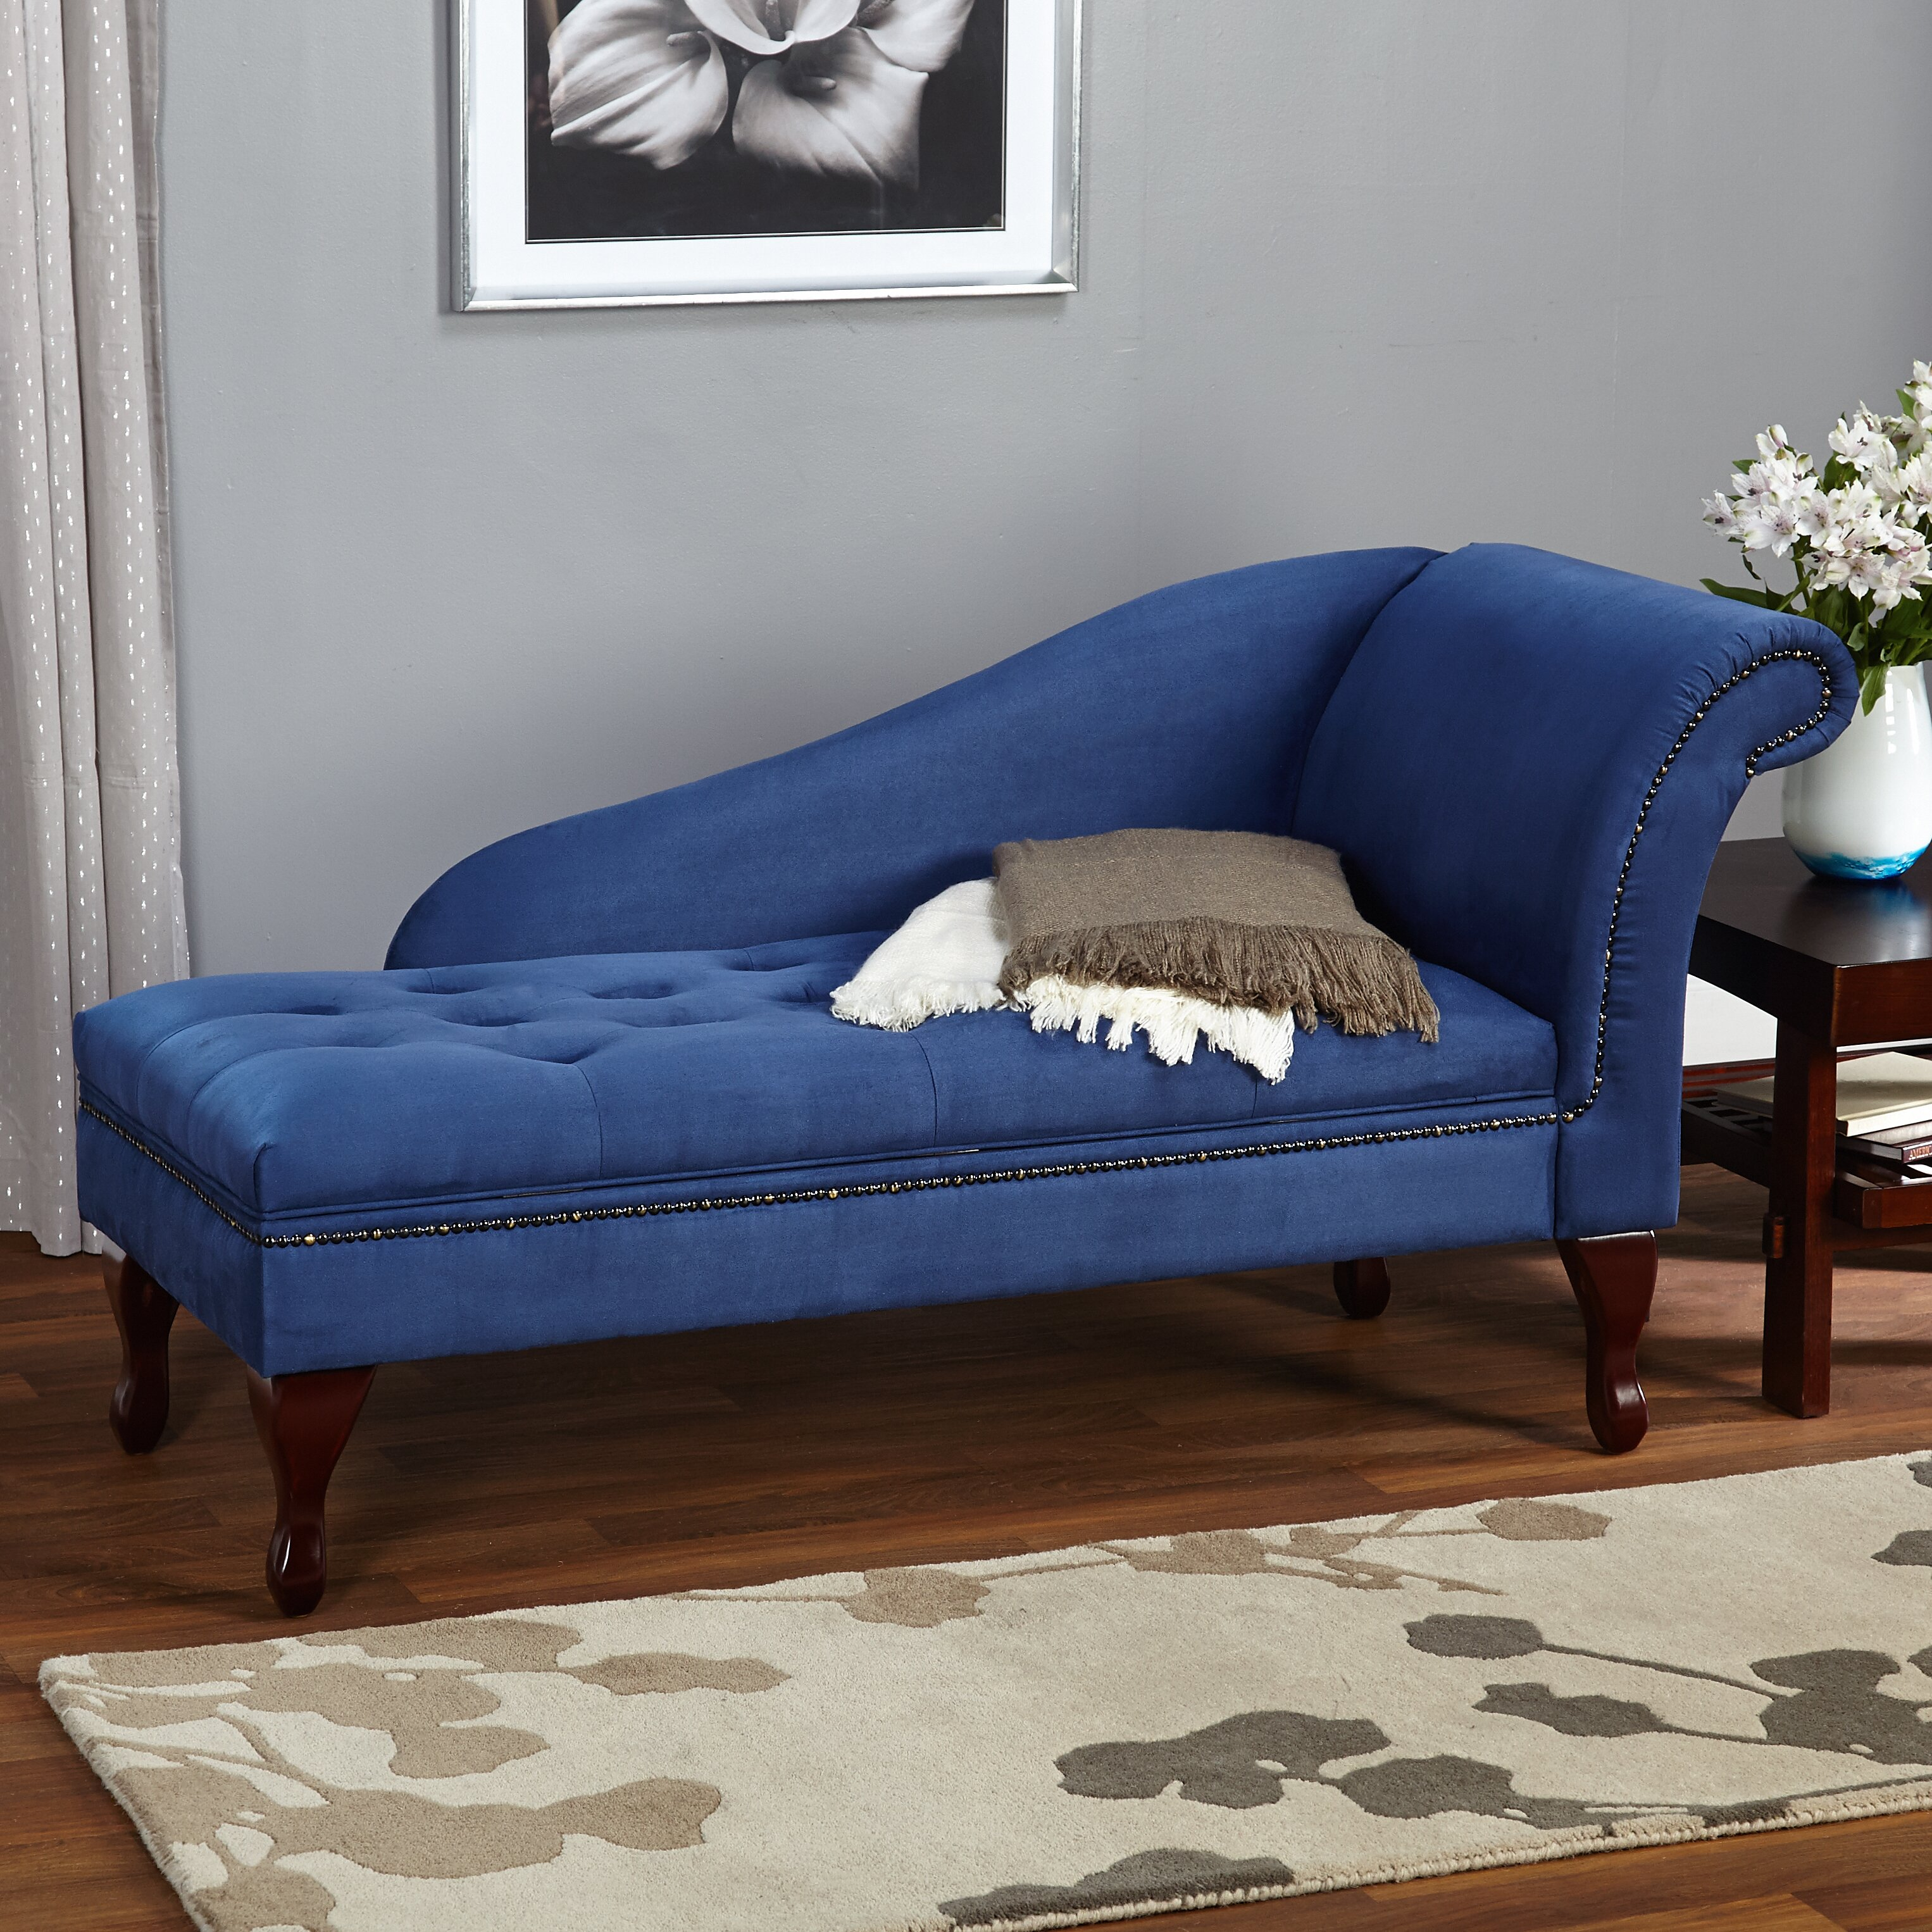 Tms storage chaise lounge reviews wayfair for Chaise bench storage